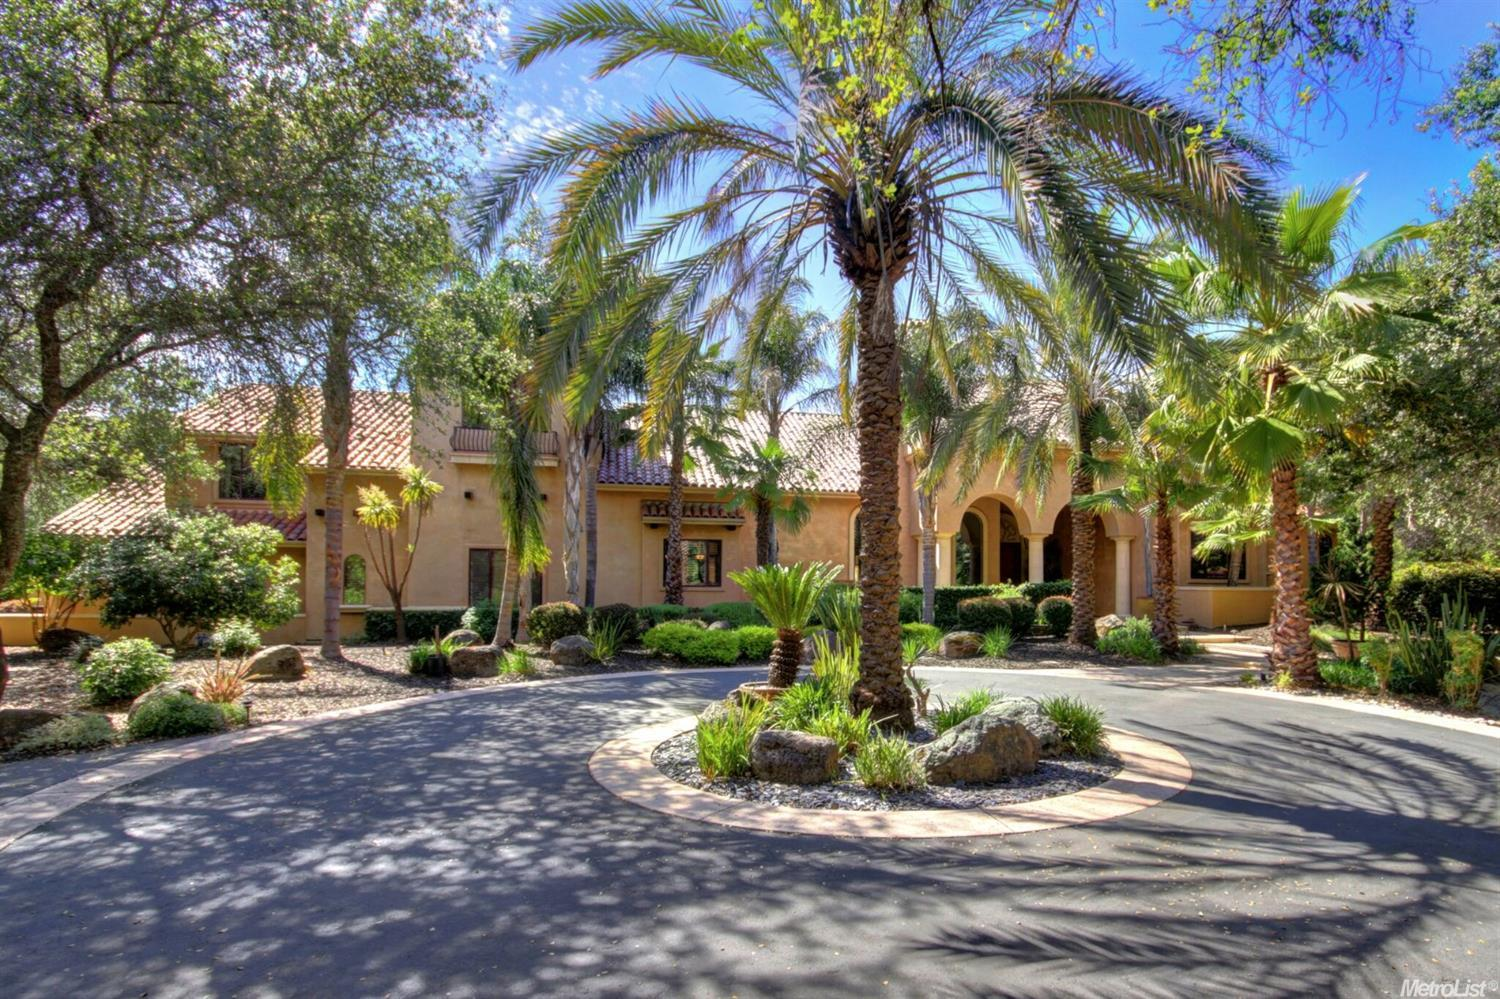 Immersed in privacy and serene natural beauty this Montecito style estate designed by Donald Joseph captivates high end detailed finishes, luxurious amenities and resort style living set on 5 beautiful acres that include a separate covered outdoor kitchen with changing room and bath that overlook the sparkling pool tennis/basketball court and batting cage.  Luxurious ground floor master suite with additional exercise room and sumptuous master bath includes steam shower. Stunning estate property.